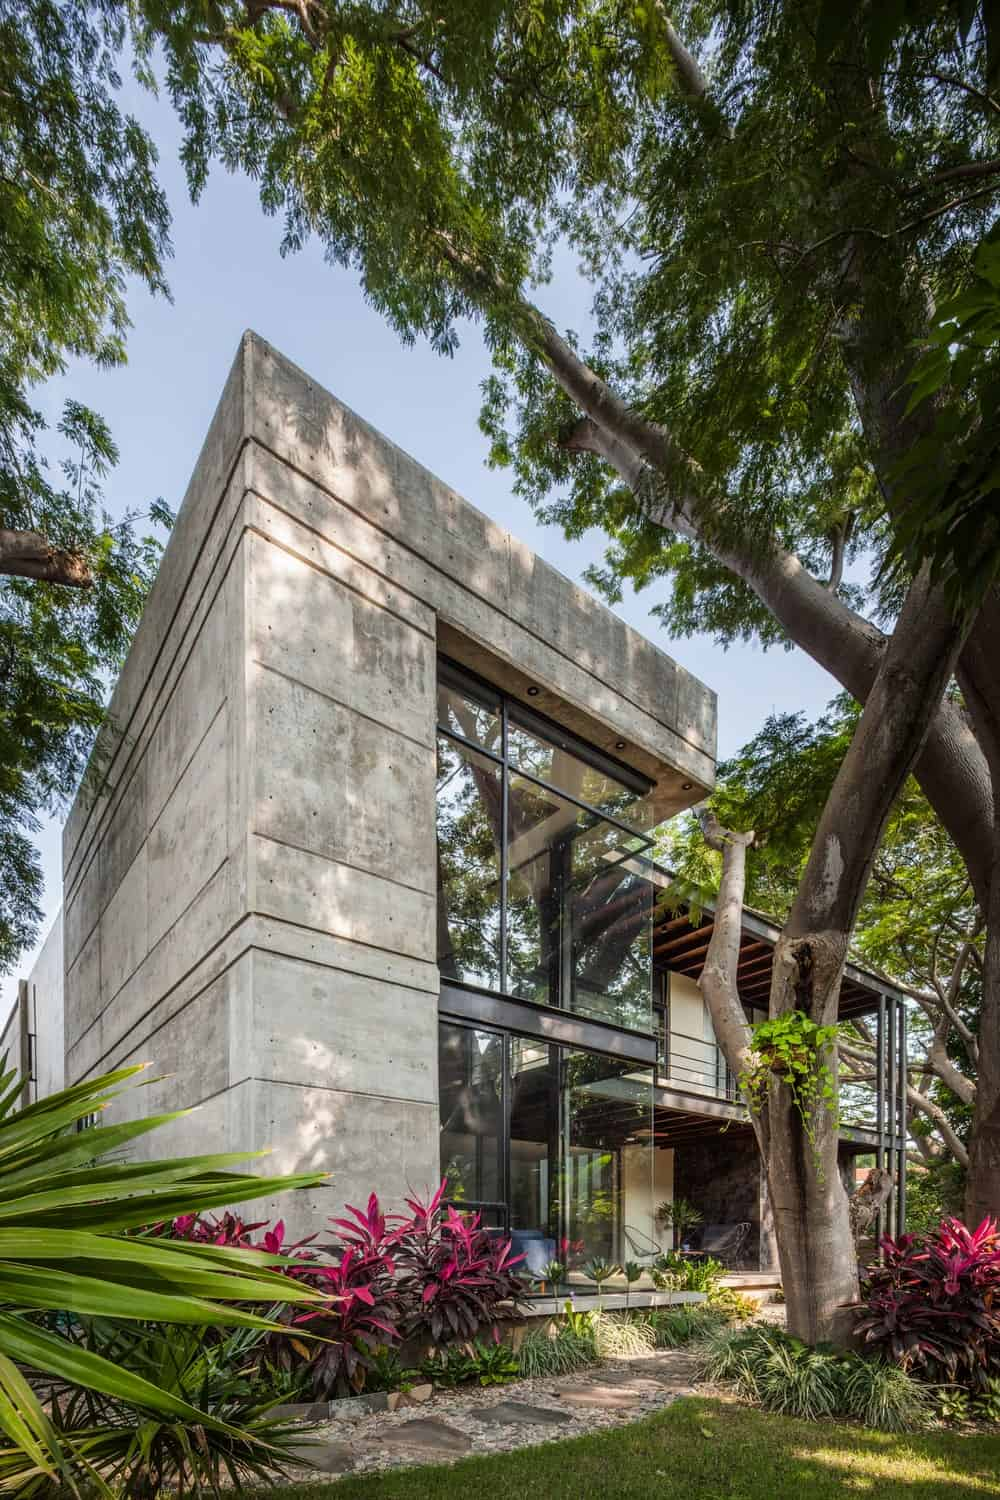 This is the back of the house featuring a large concrete structure that supports the glass walls on two levels at this side of the house.